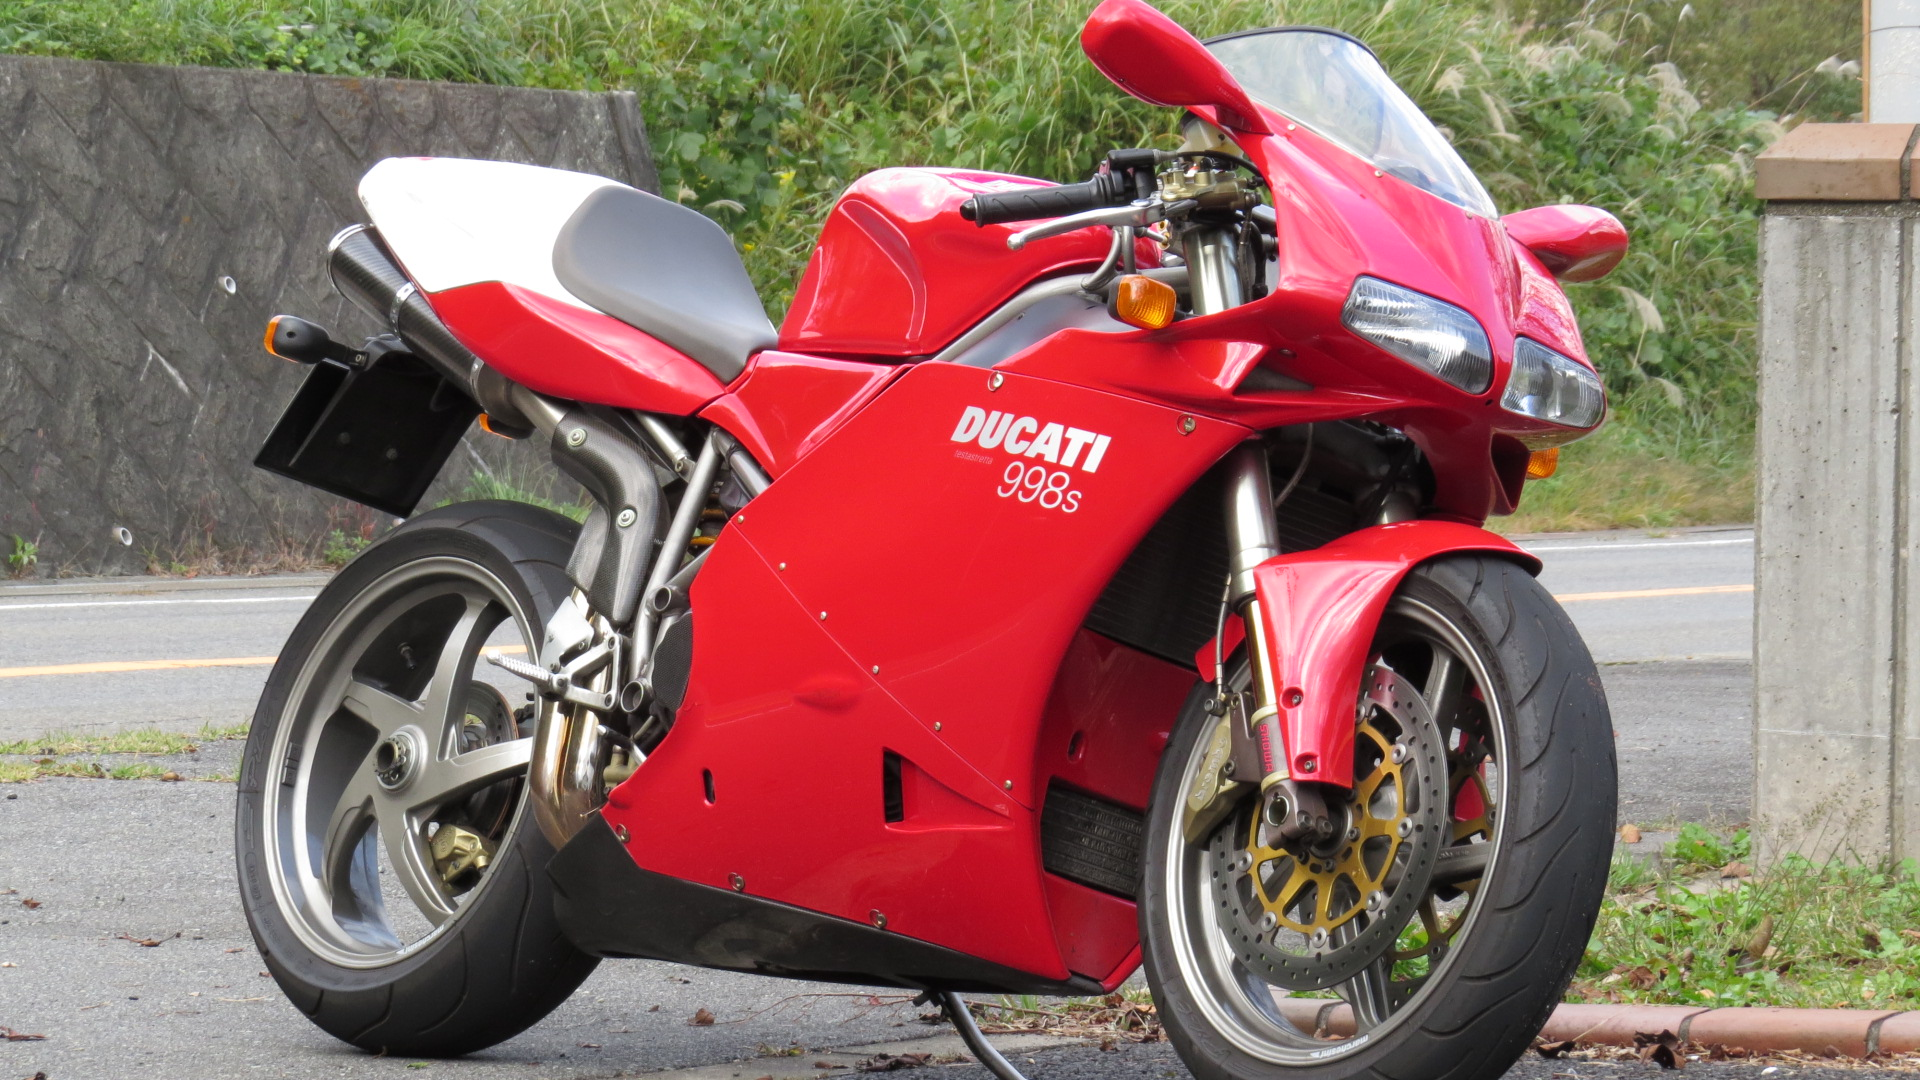 Ducati 998 R 2002 wallpapers #11808